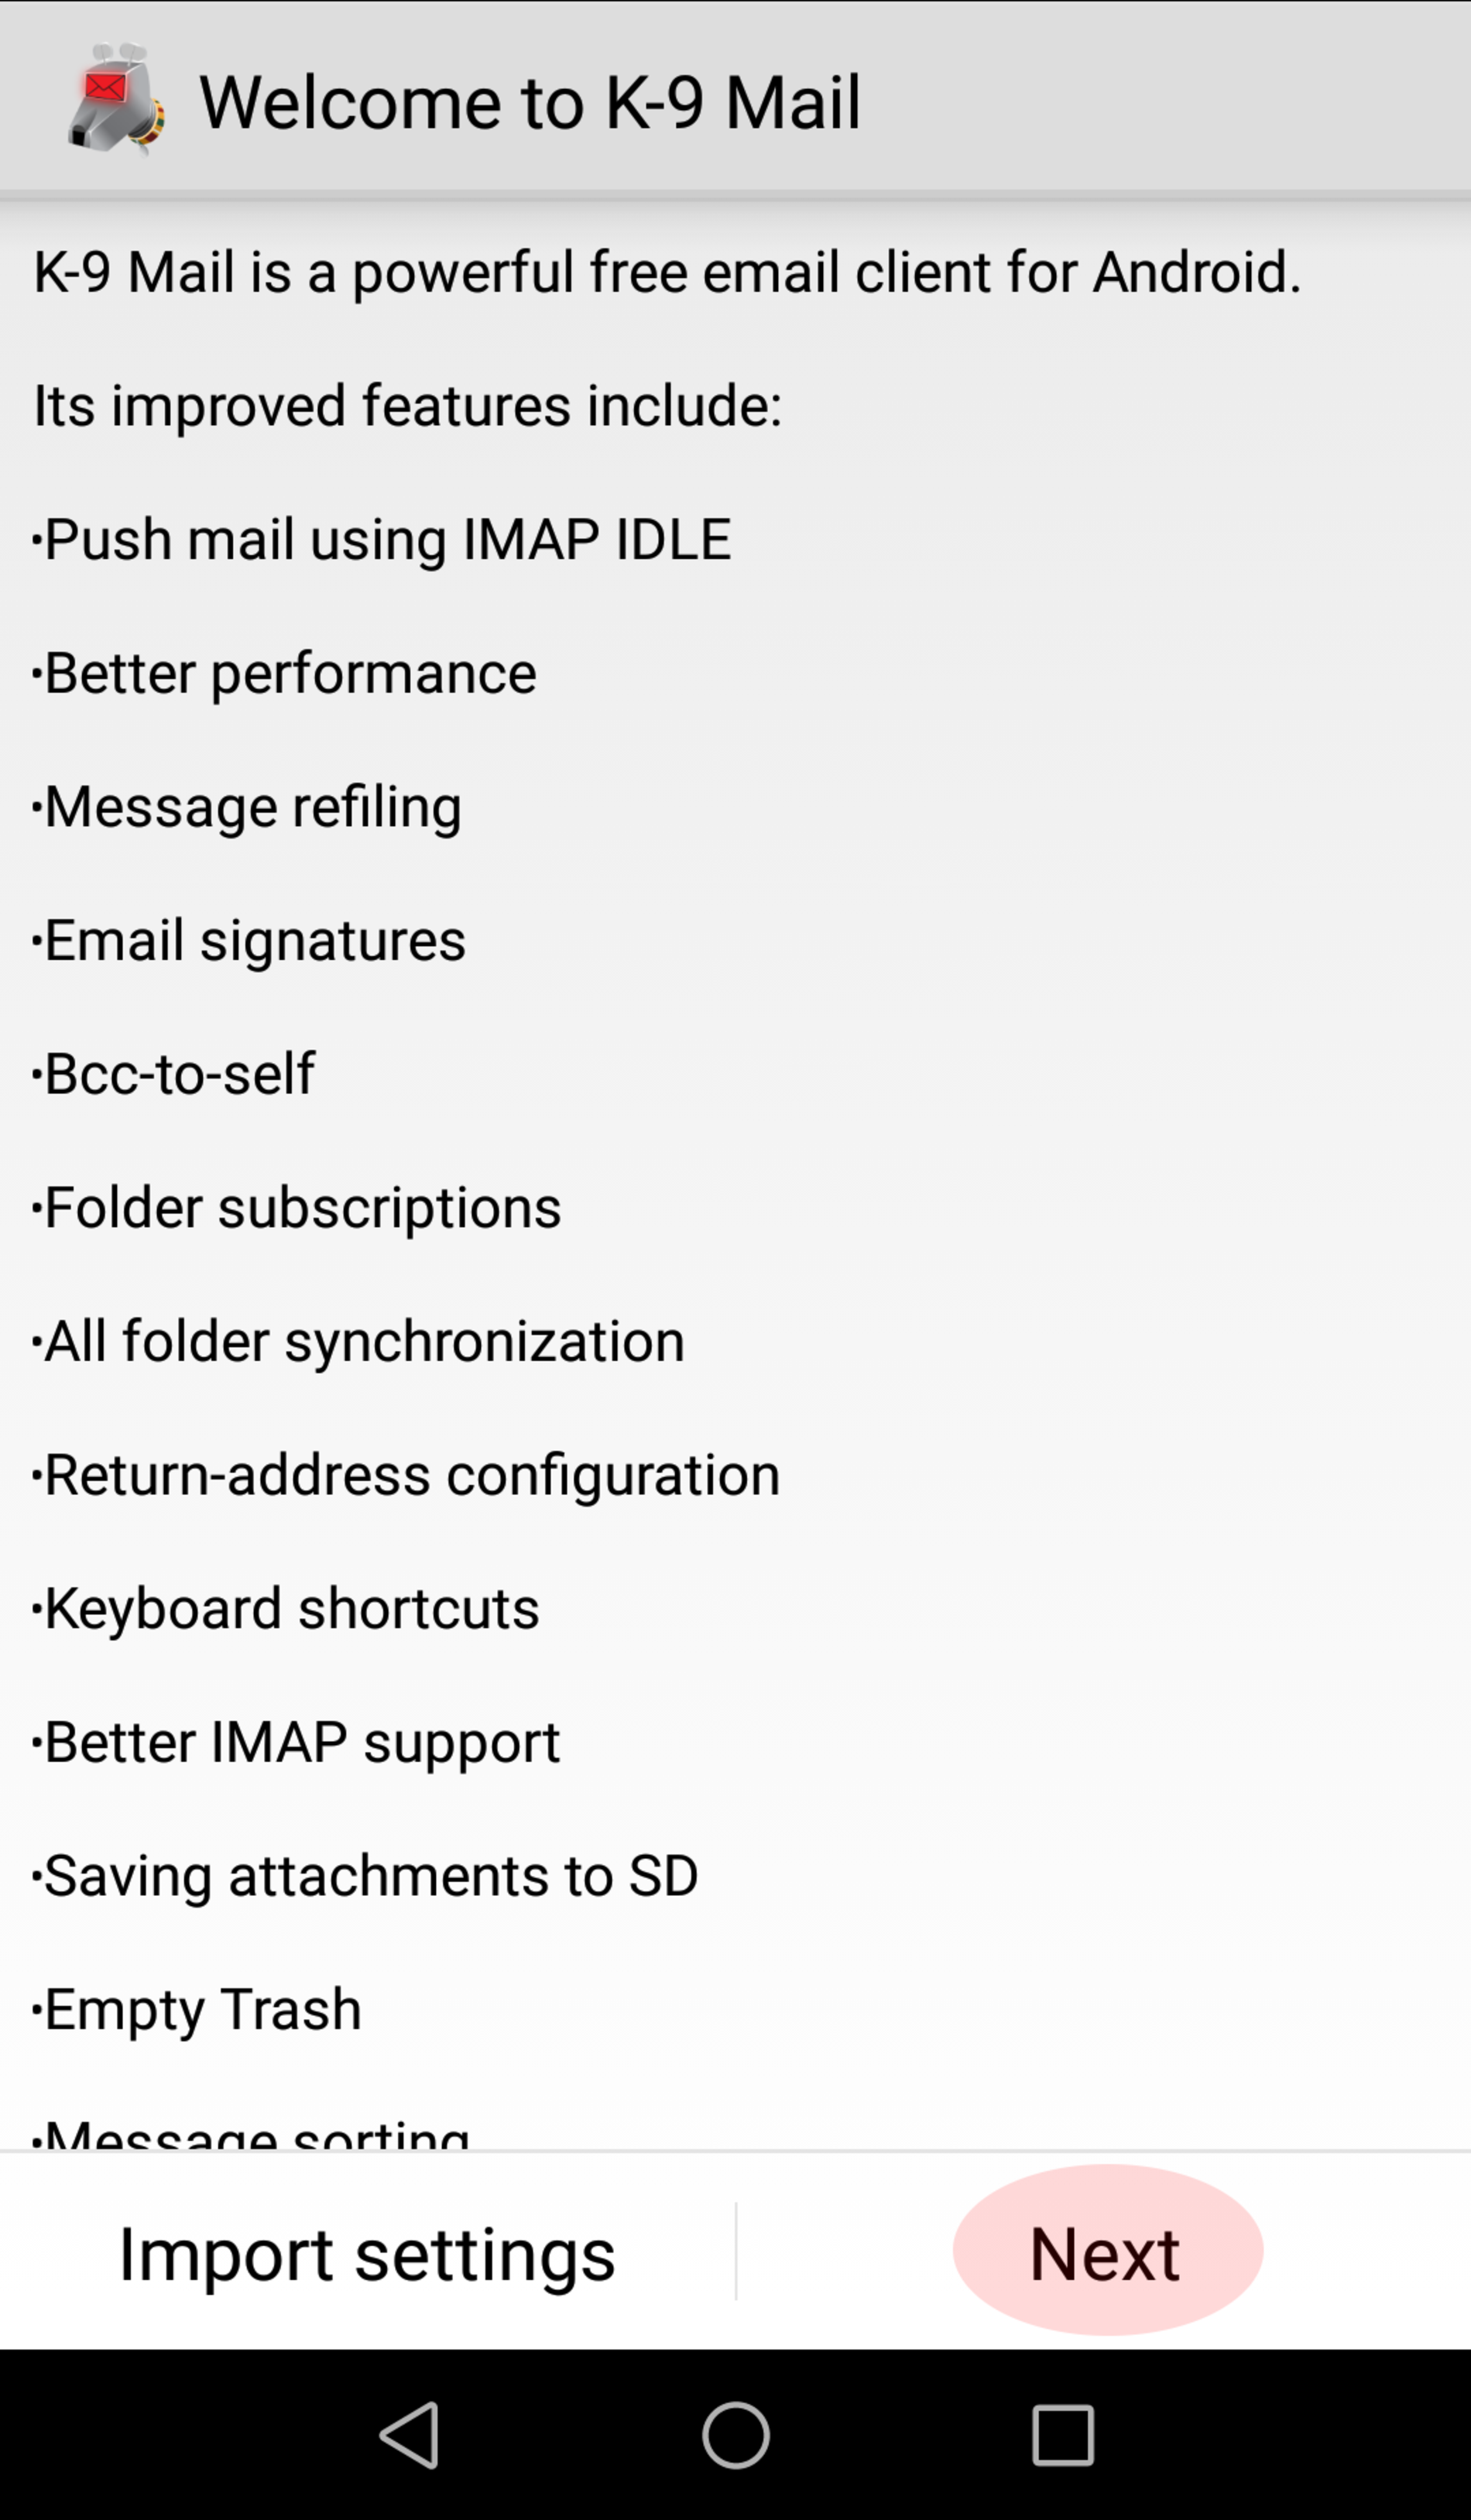 Set up new e-mail account with K-9 mail of Android™